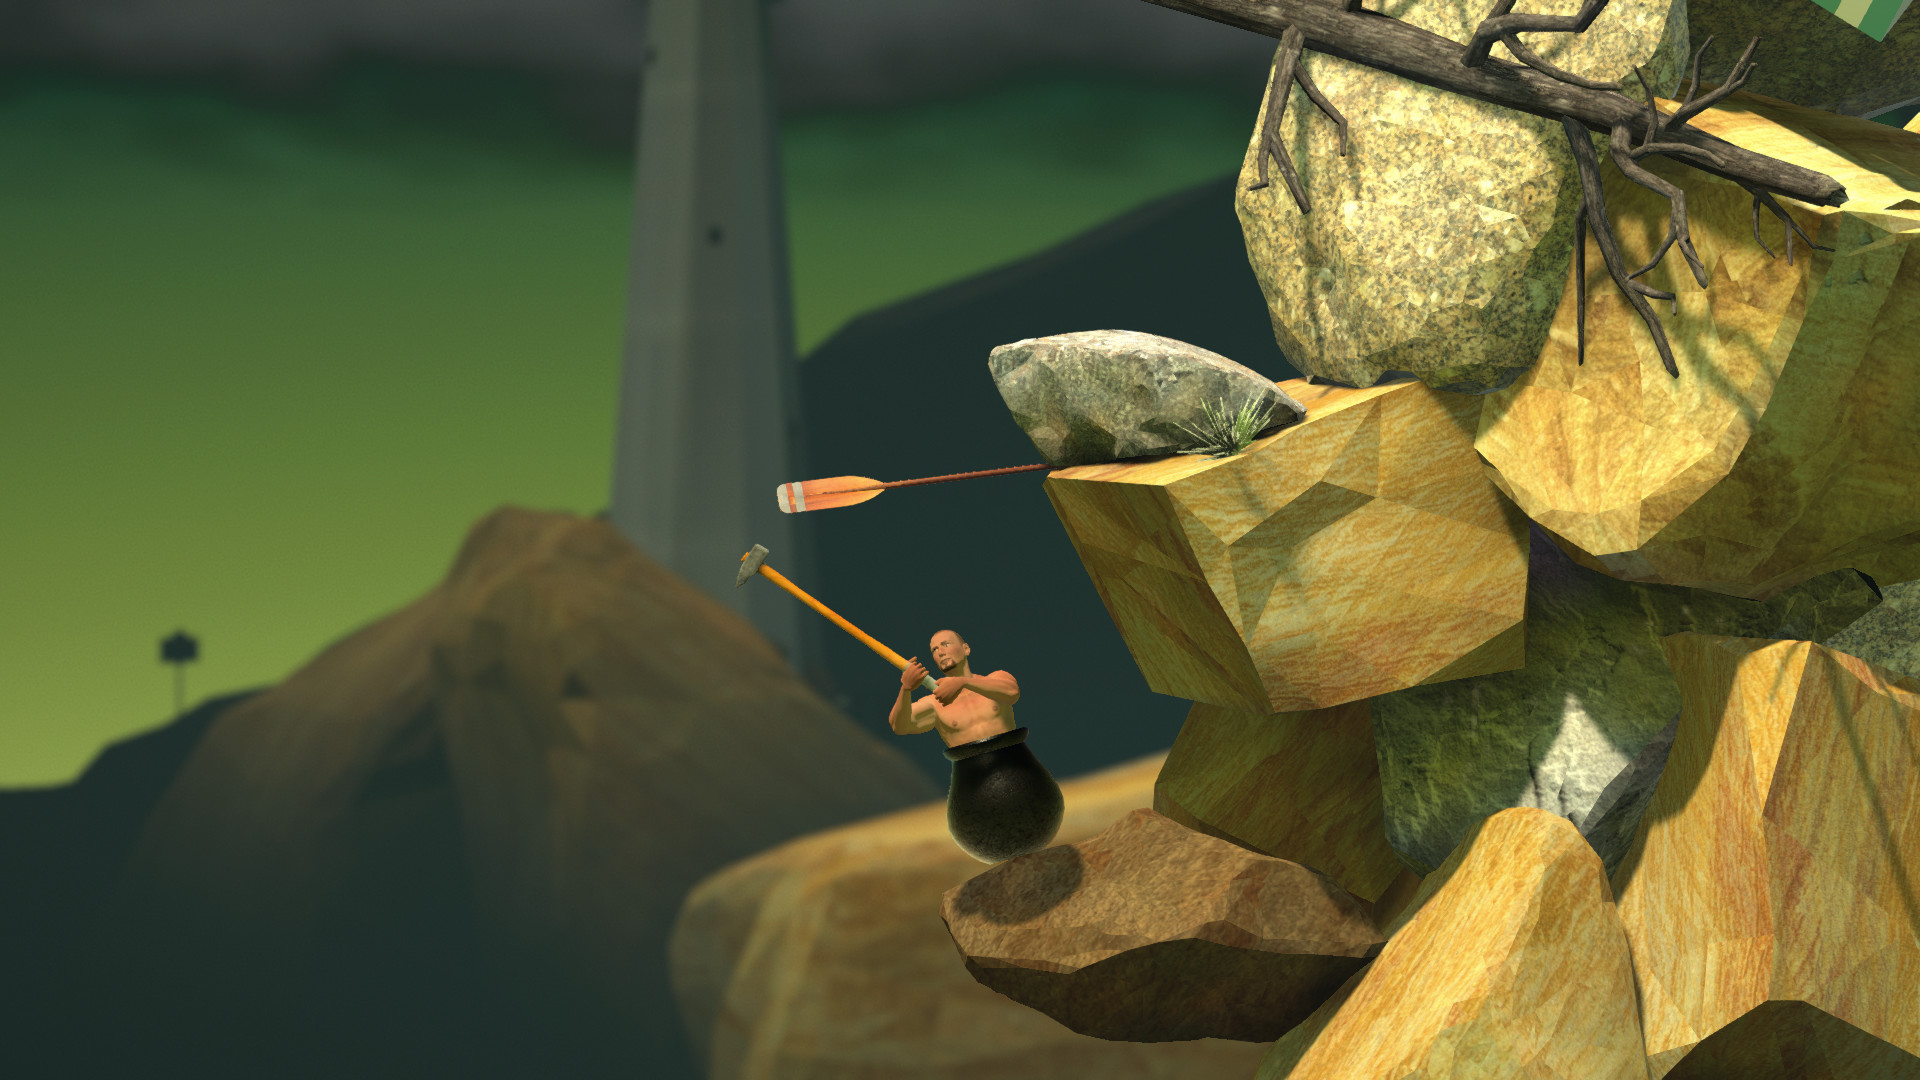 Getting Over It with Bennett Foddy is out this week on Steam